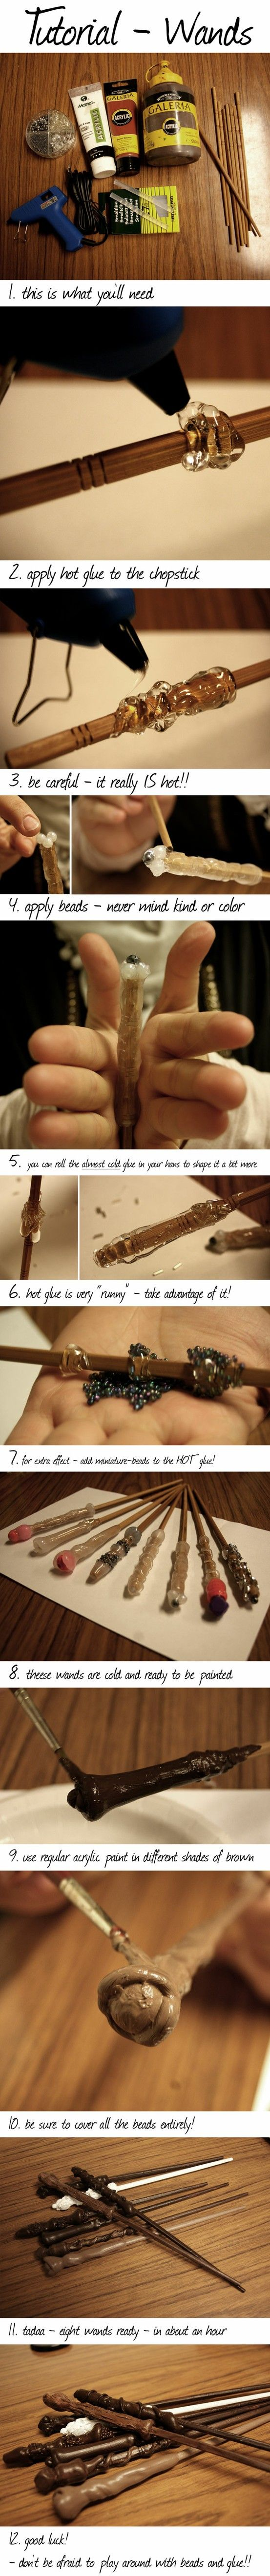 Harry Potter Wands, awesome